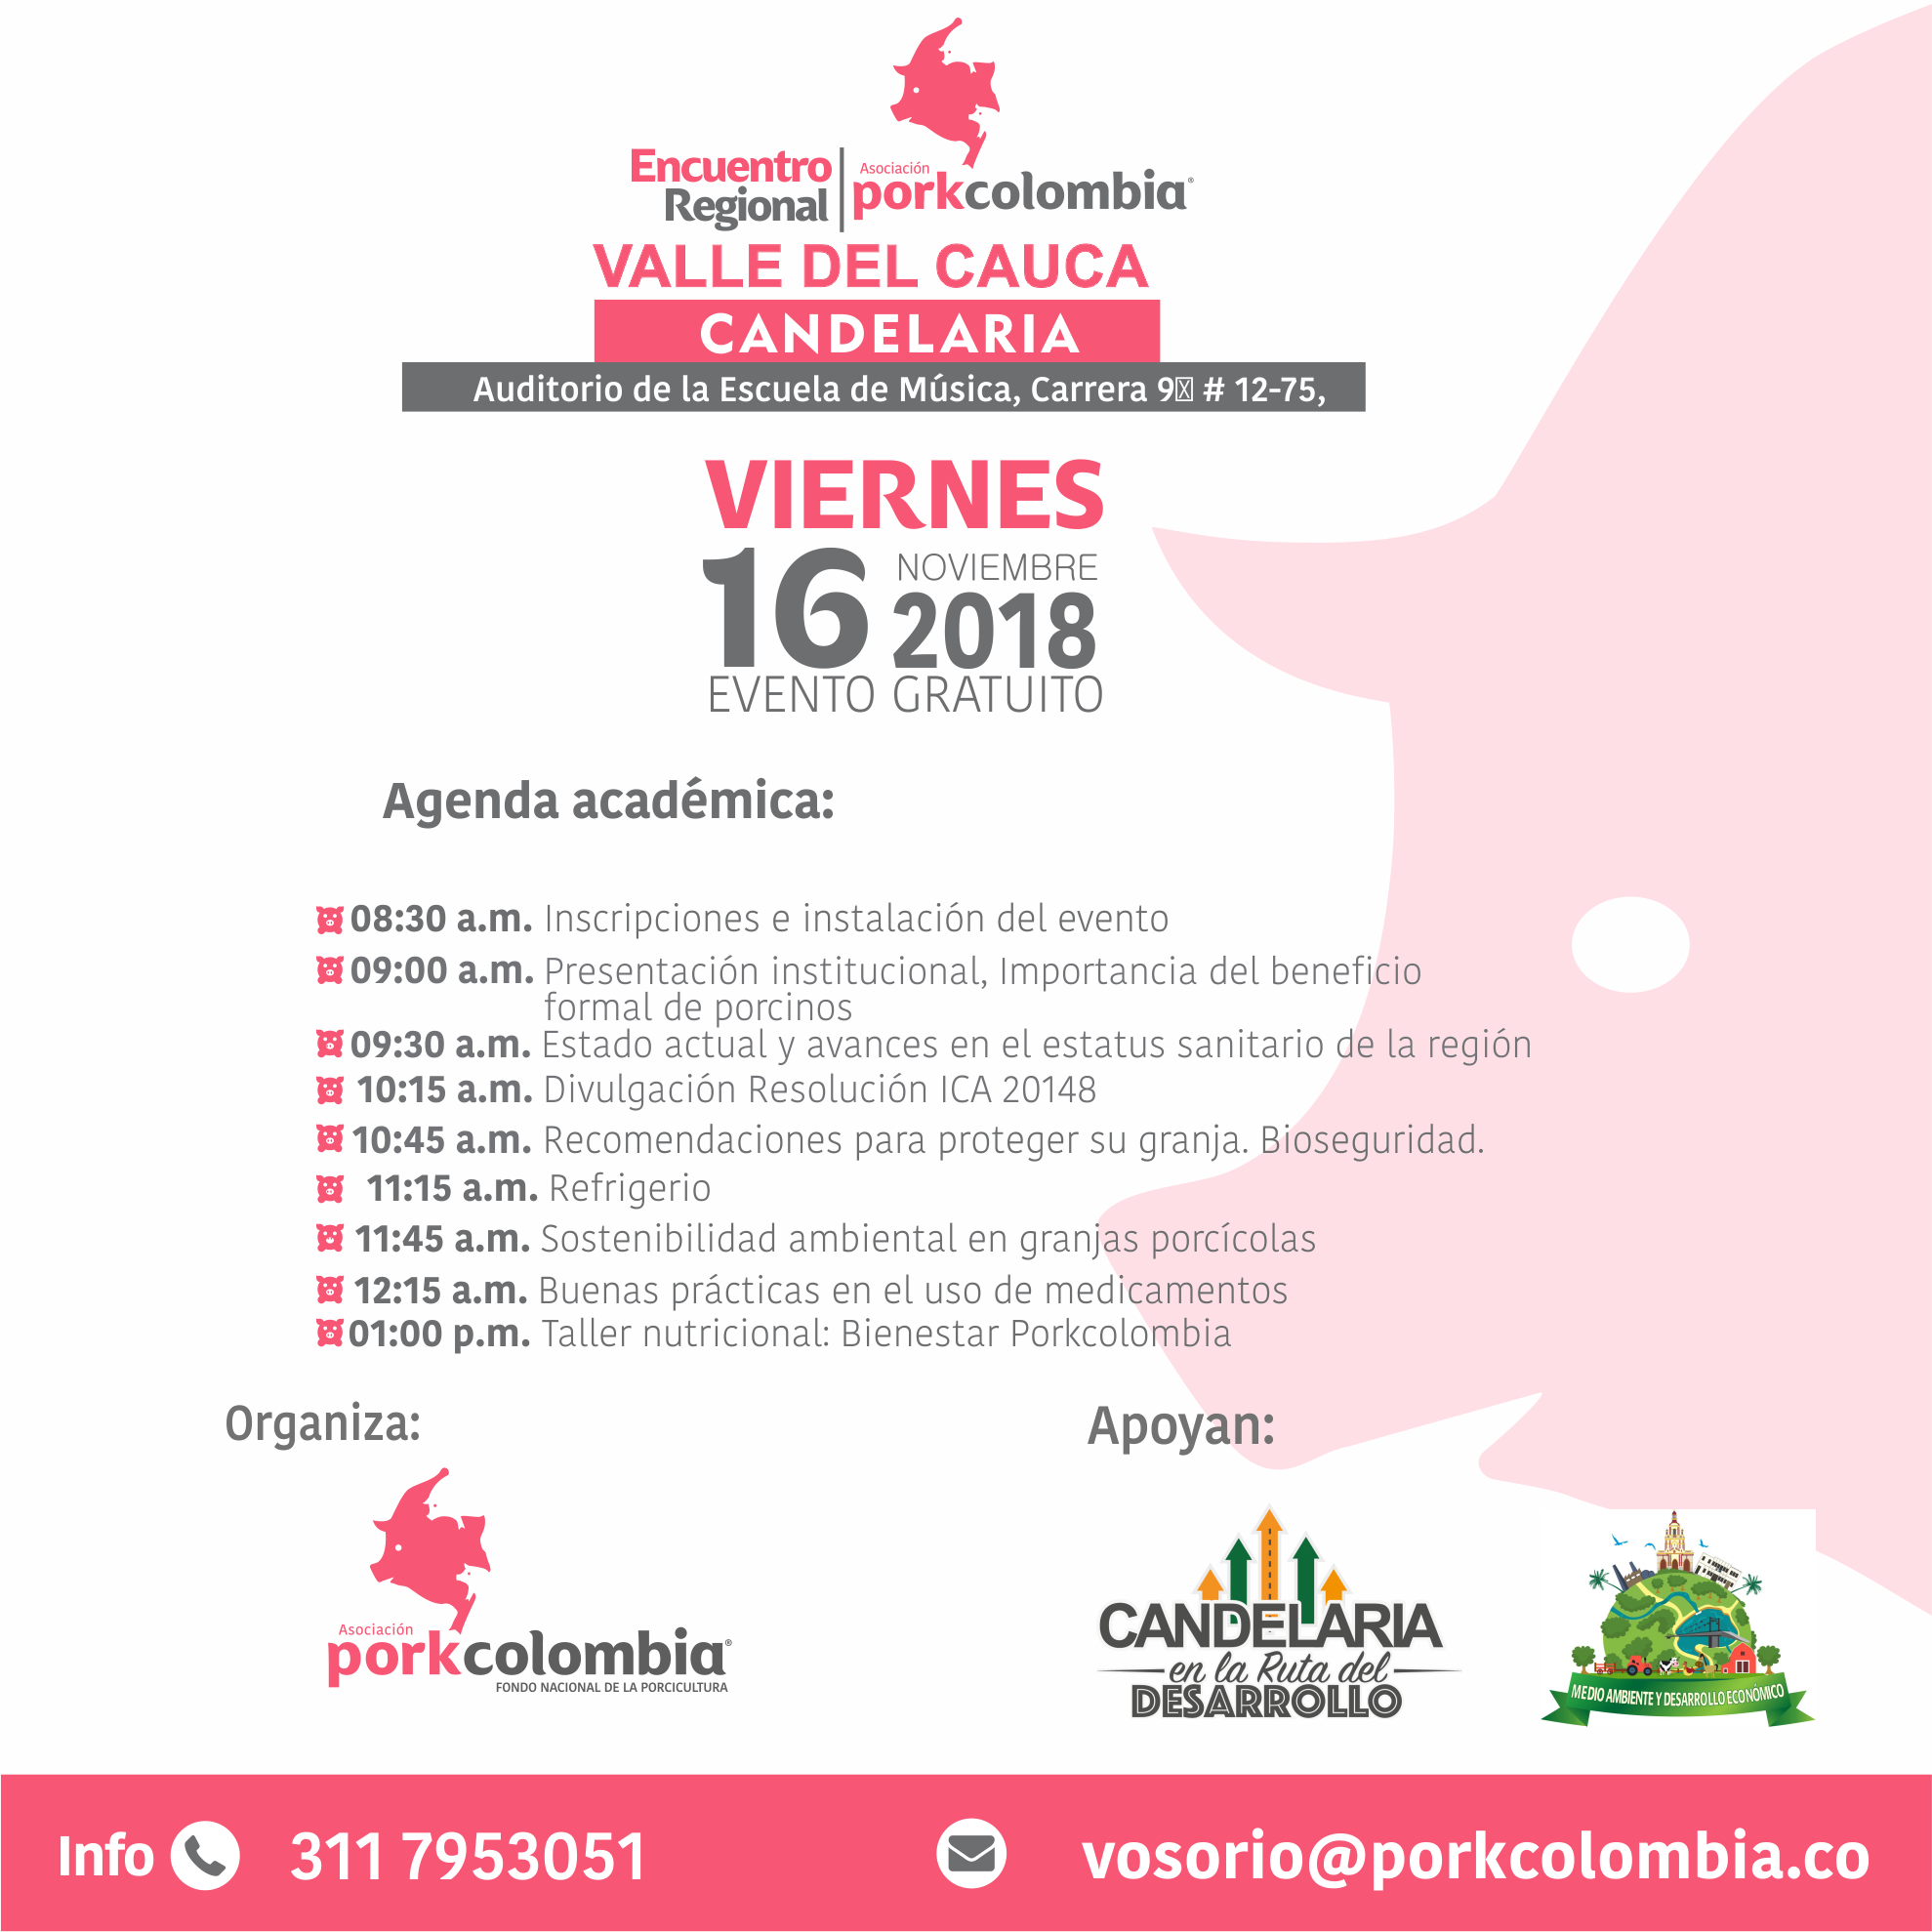 https://www.porkcolombia.co/wp-content/uploads/2018/10/ENCUENTRO_16_NOV_candelaria.png